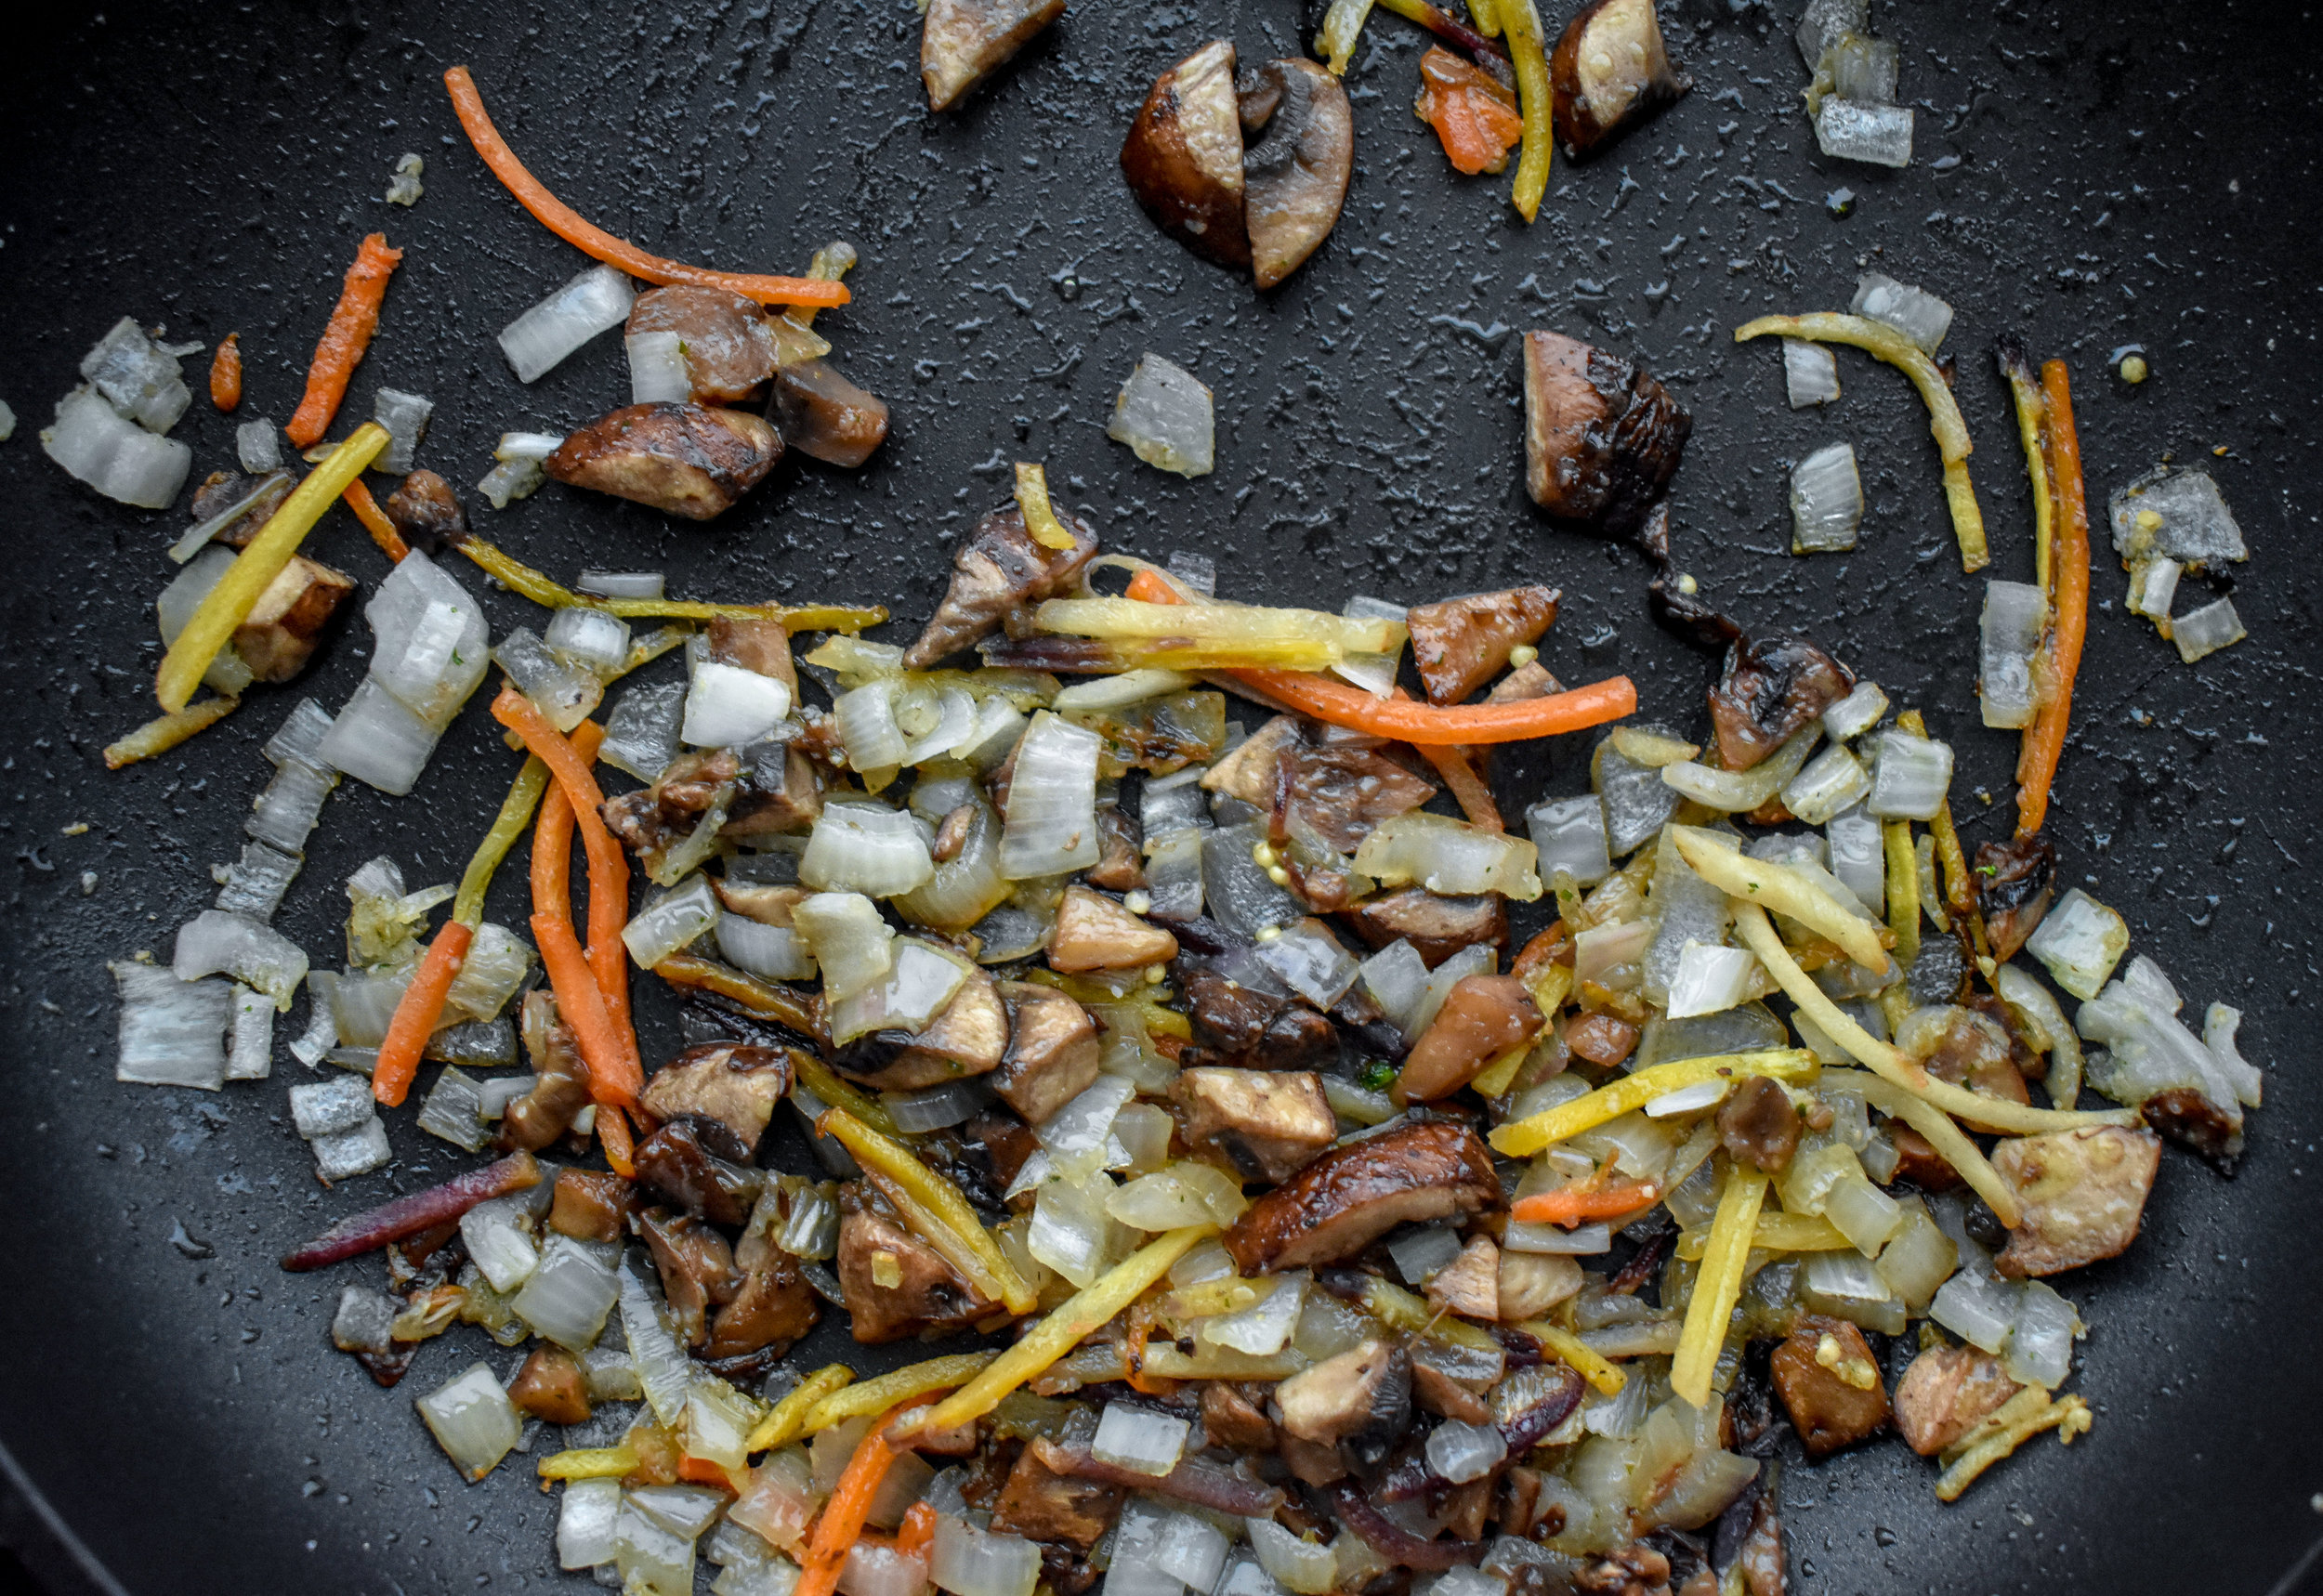 1. While the millet cooks, place mushrooms carrots, garlic and shallot in medium pan with 1 tbl of olive oil. Cook over medium heat for 5-6 minutes.